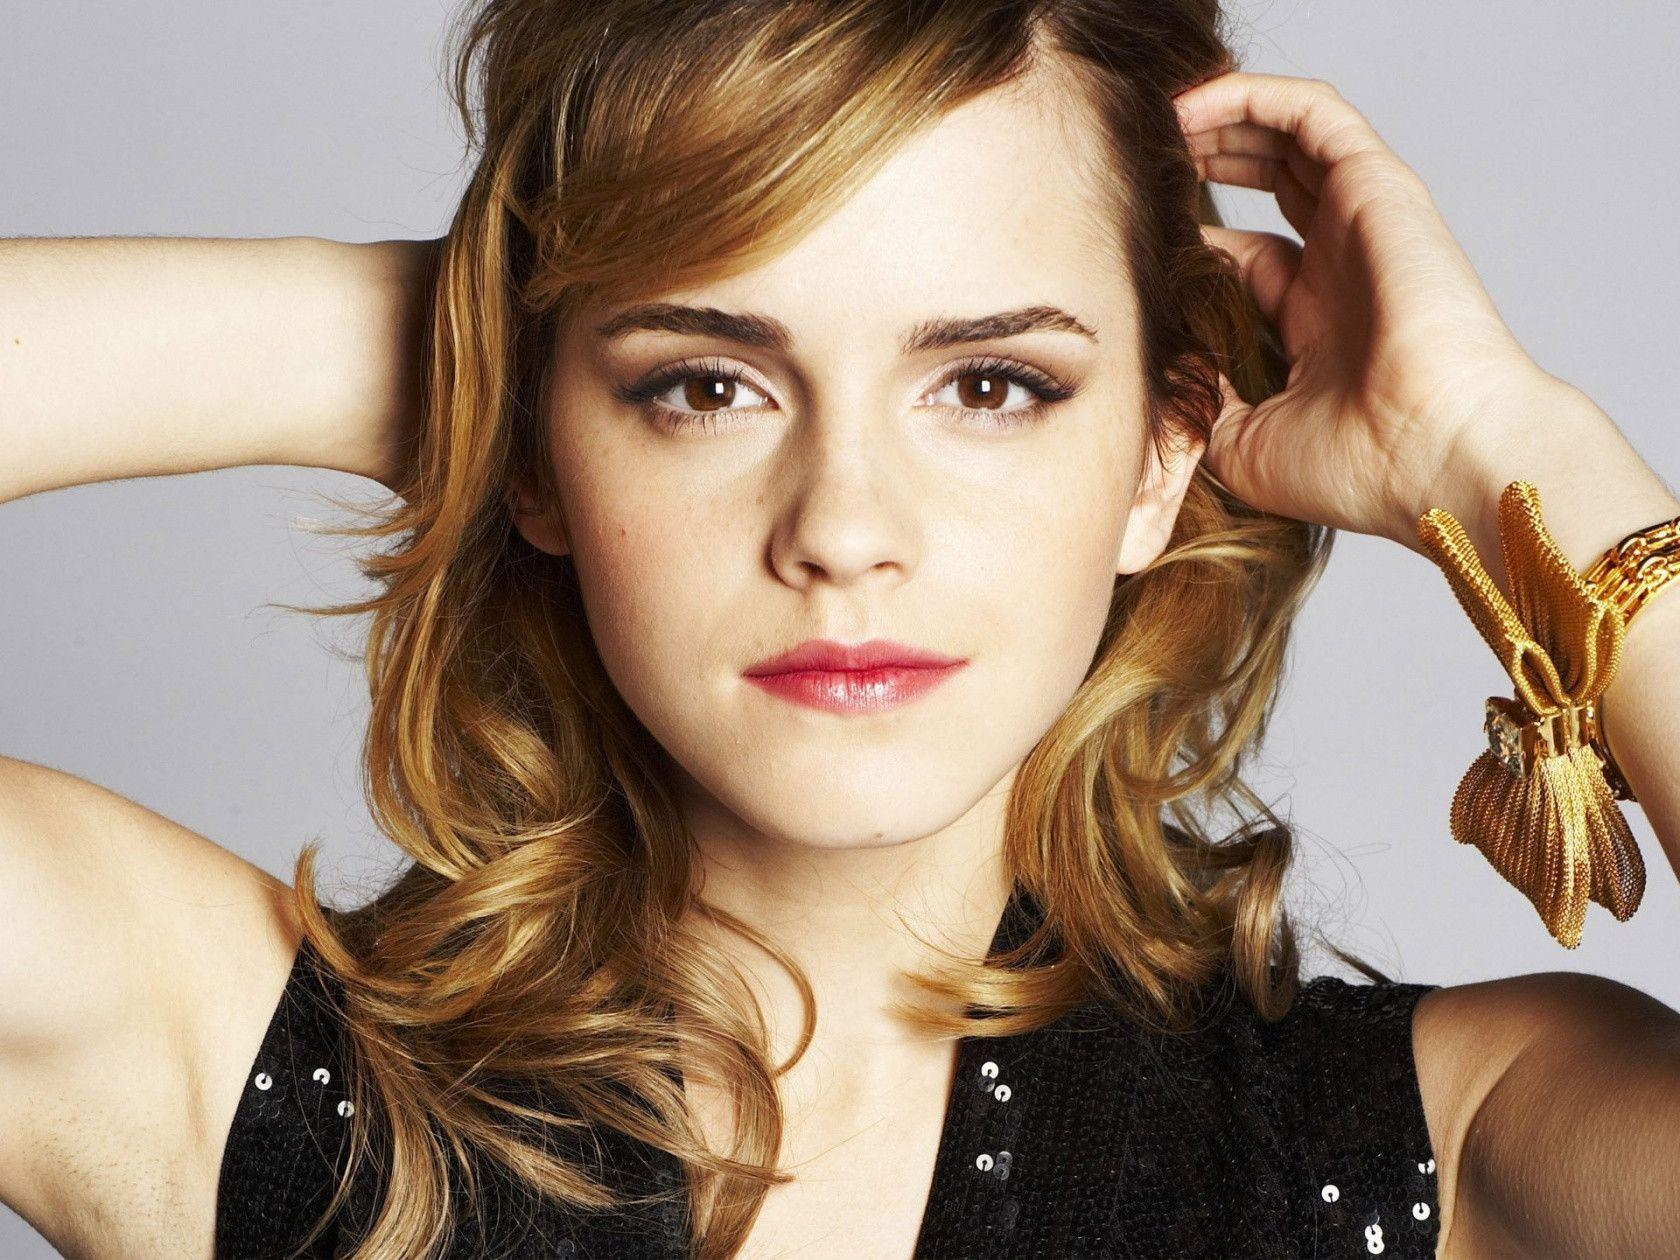 Emma watson hd wallpapers wallpaper cave - Emma watson wallpaper free download ...